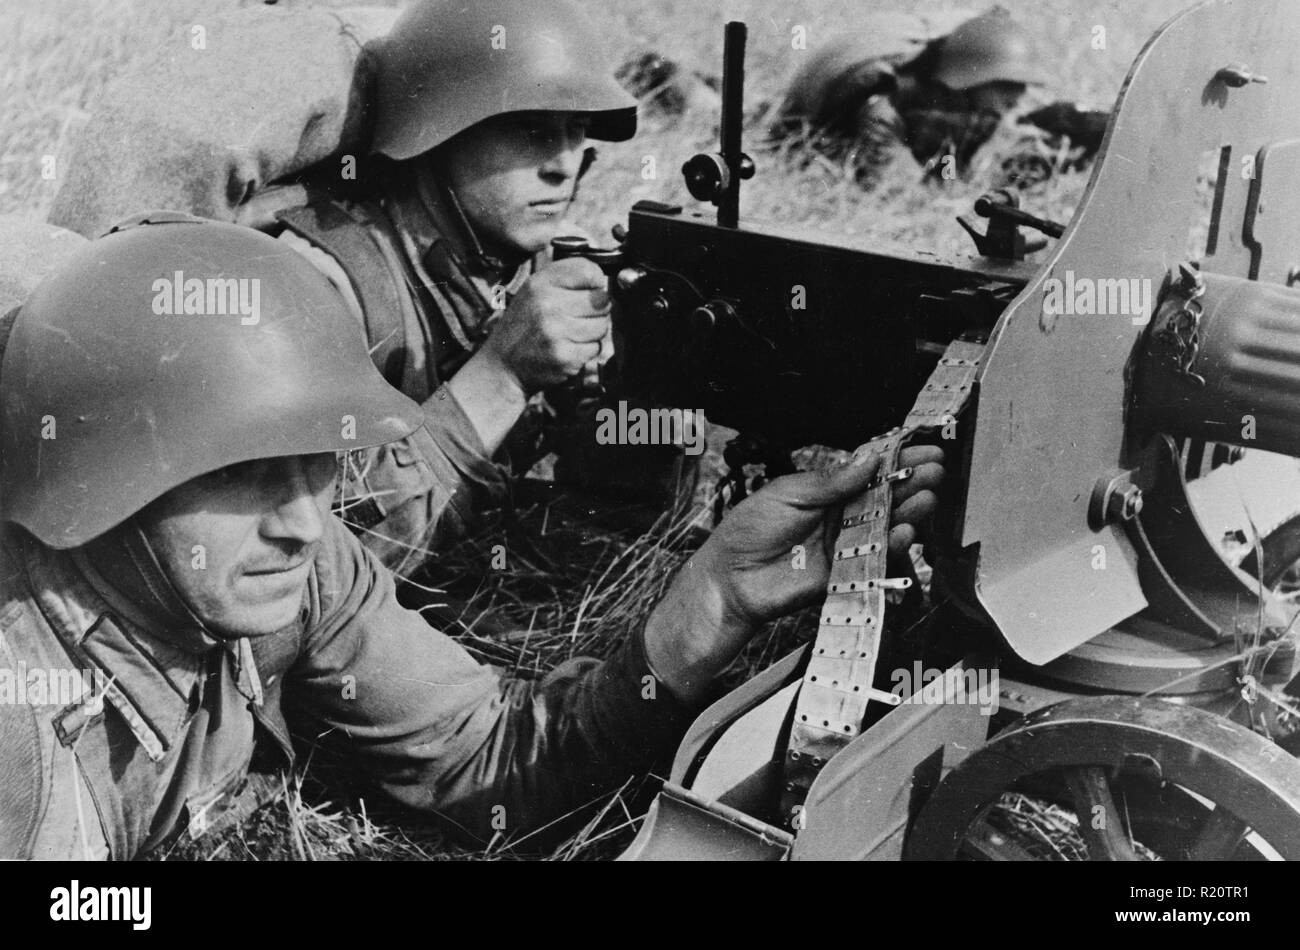 Photograph showing practical exercises of the Red Army in the far eastern territory of the USSR (Union of Soviet Socialist Republics). Dated 1939 - Stock Image